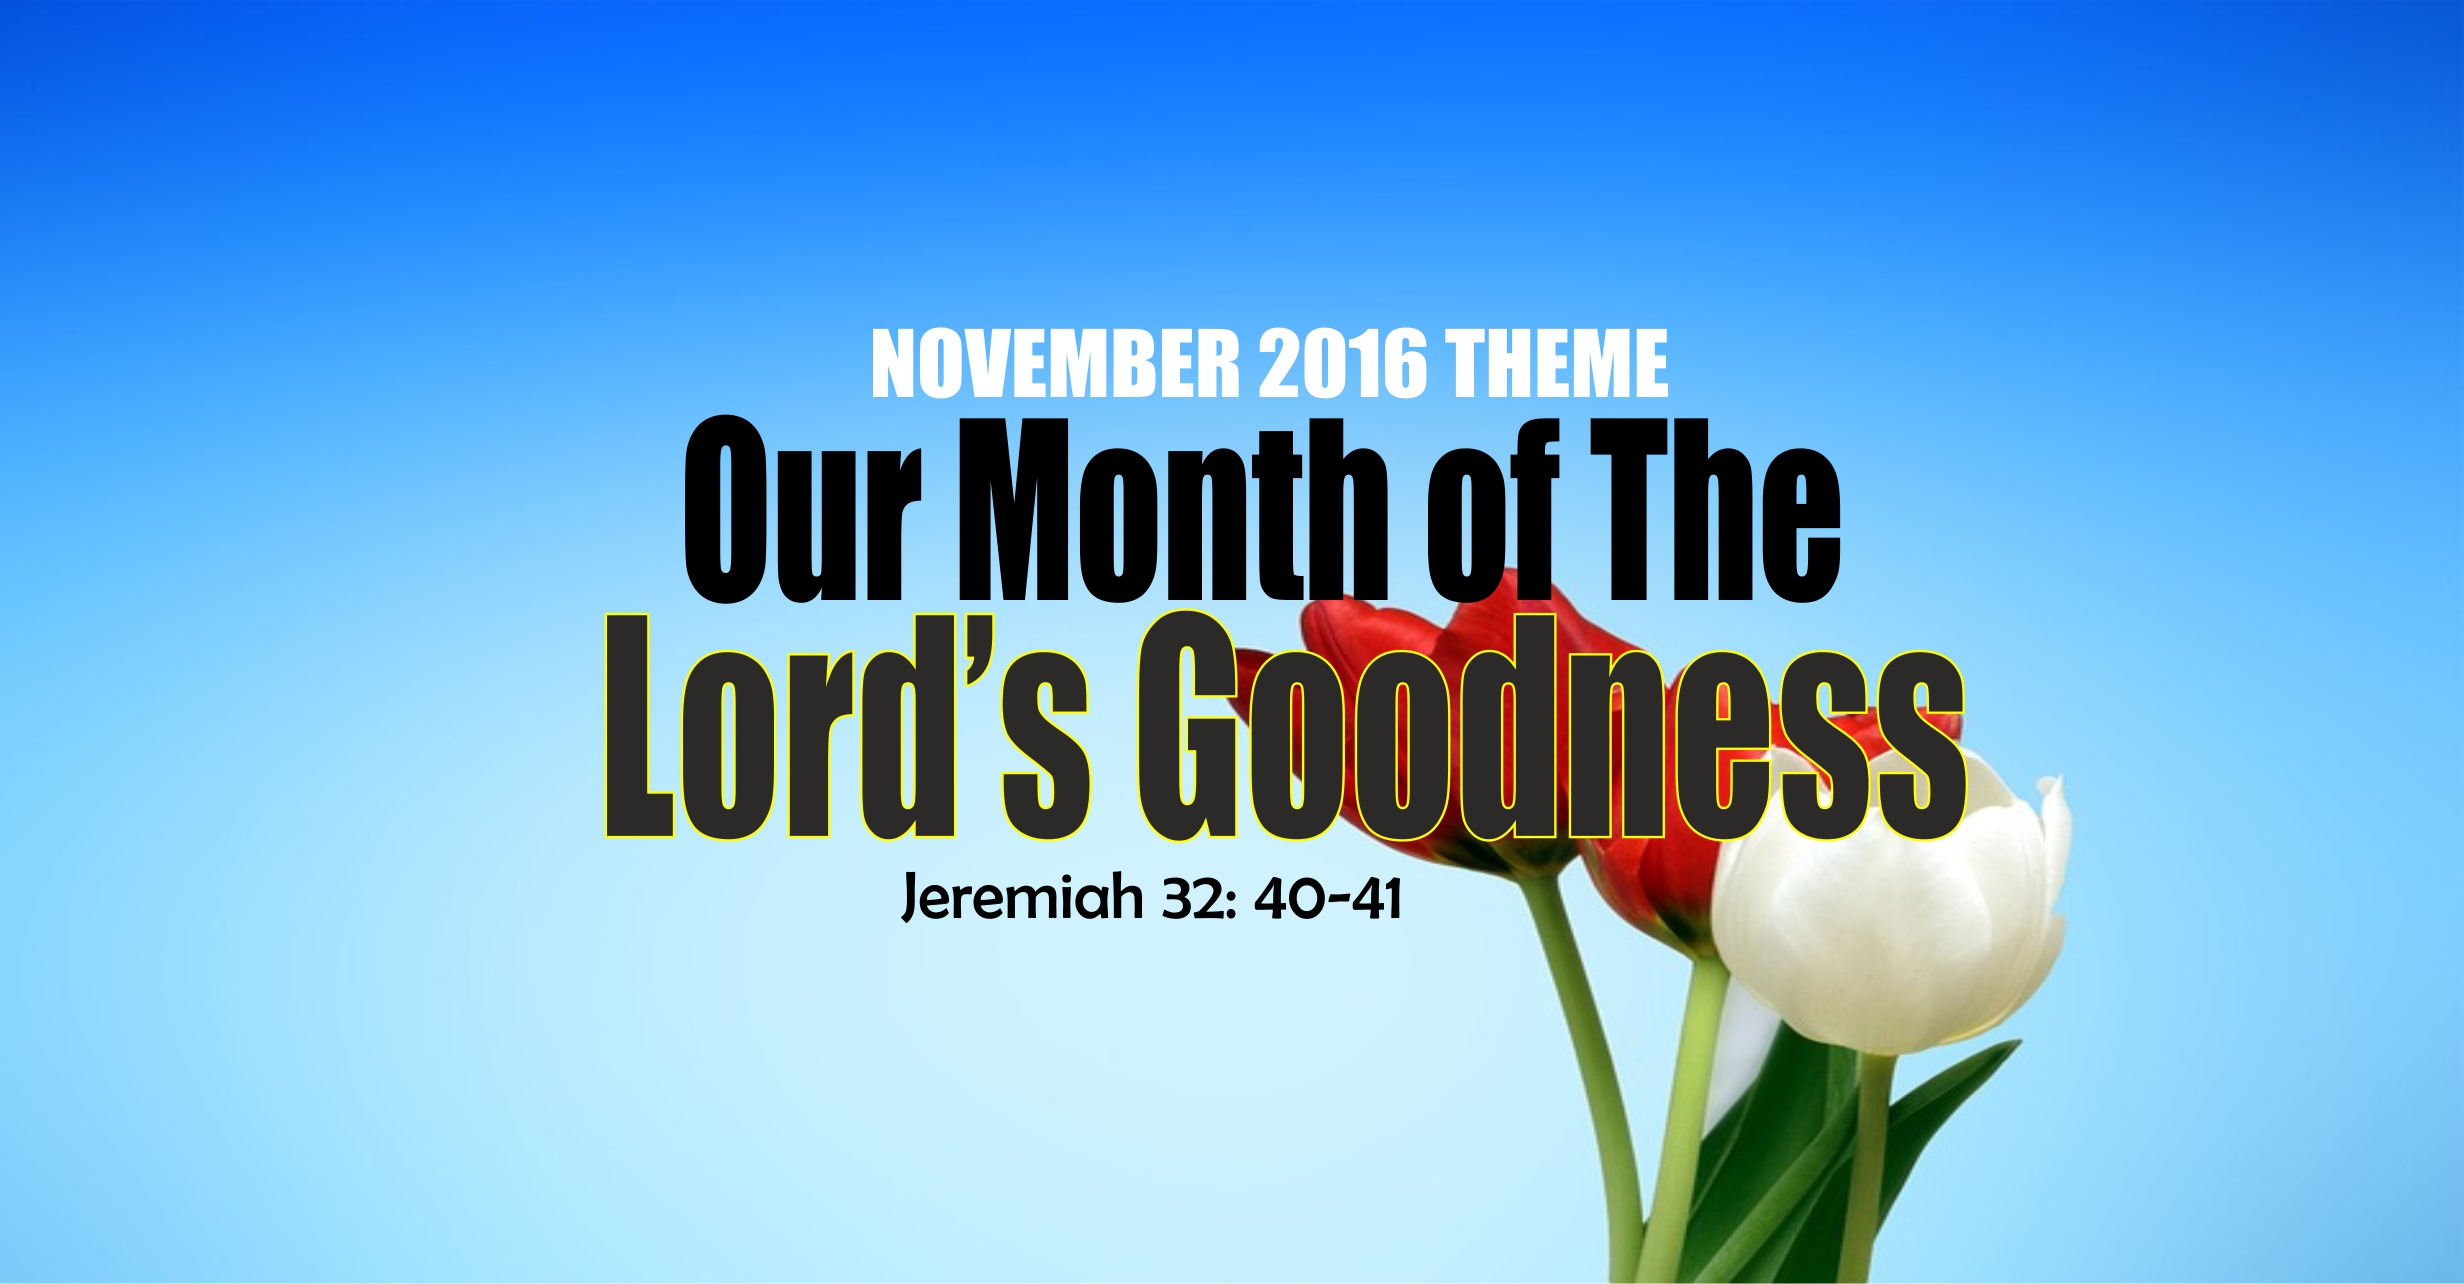 November 2016 Theme – Our Month of The Lord's Goodness. Jeremiah 32 vs 40-41.